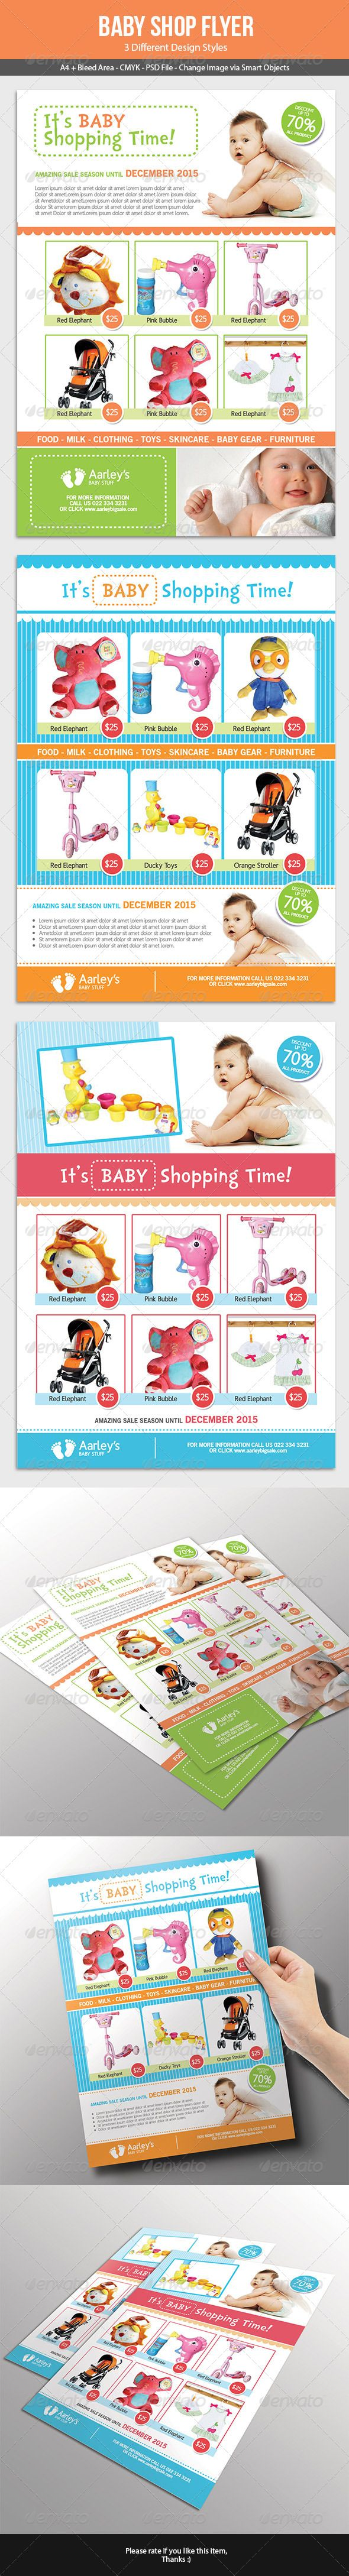 baby shop flyer flyer template babies and advertising flyers